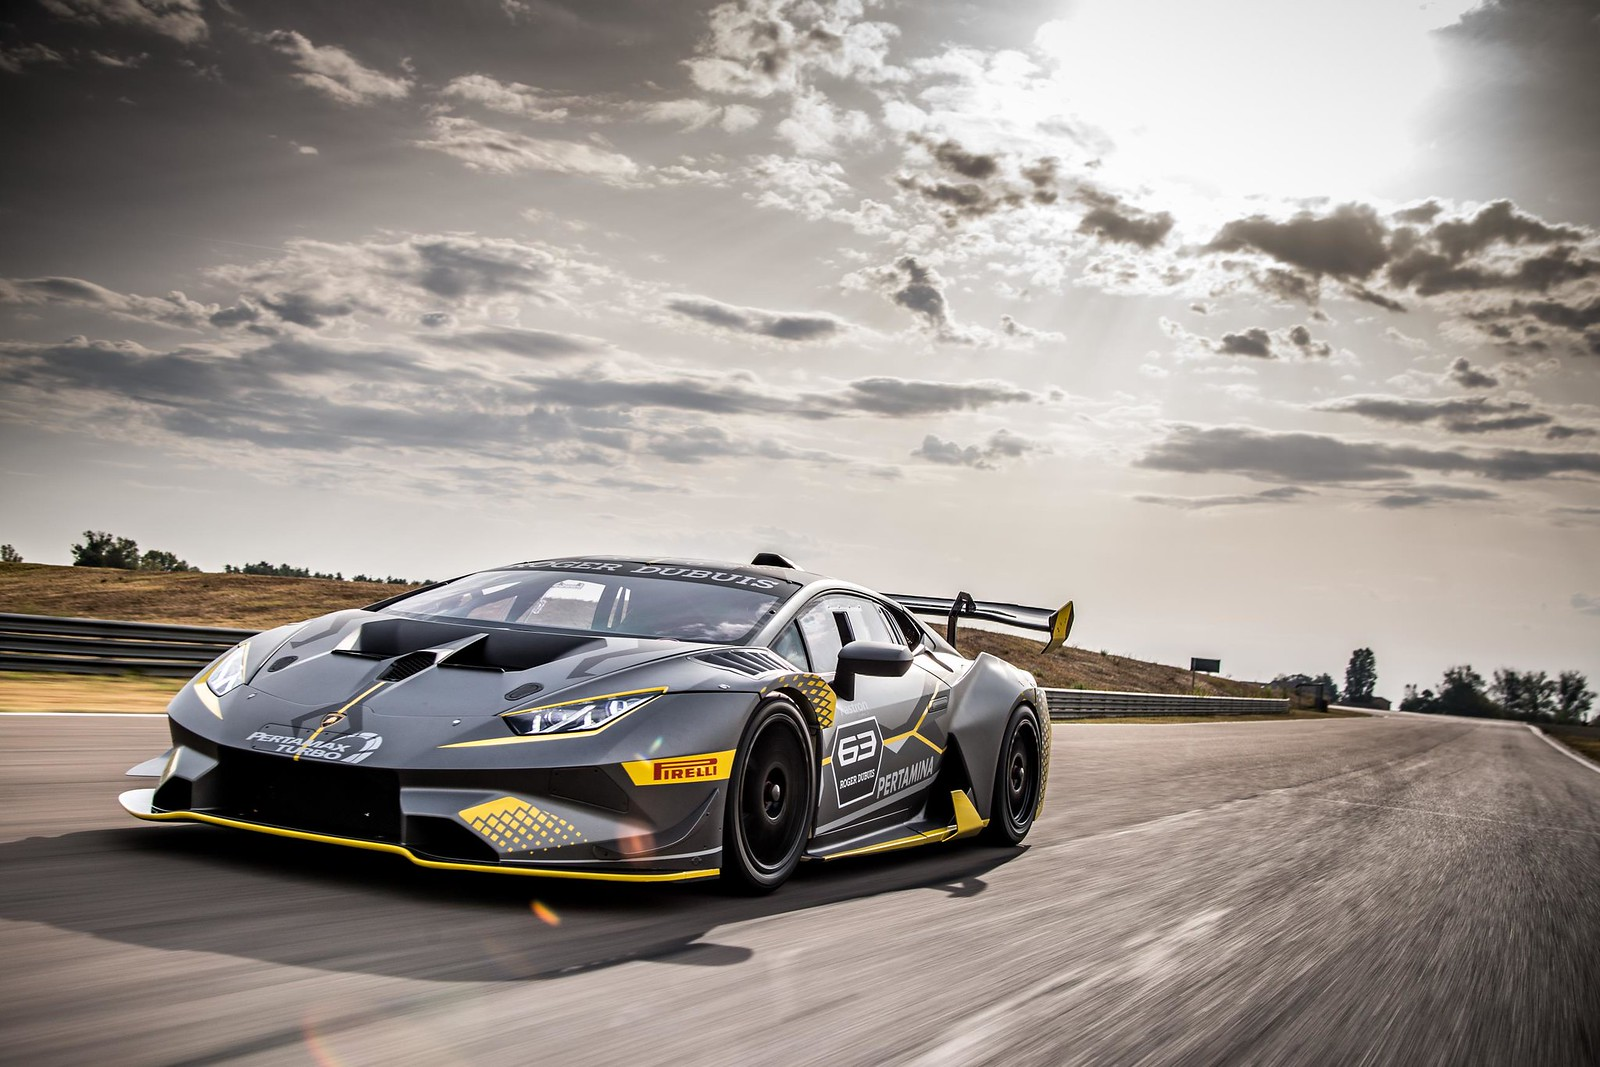 The new Huracán competition version for the Super Trofeo one-make series